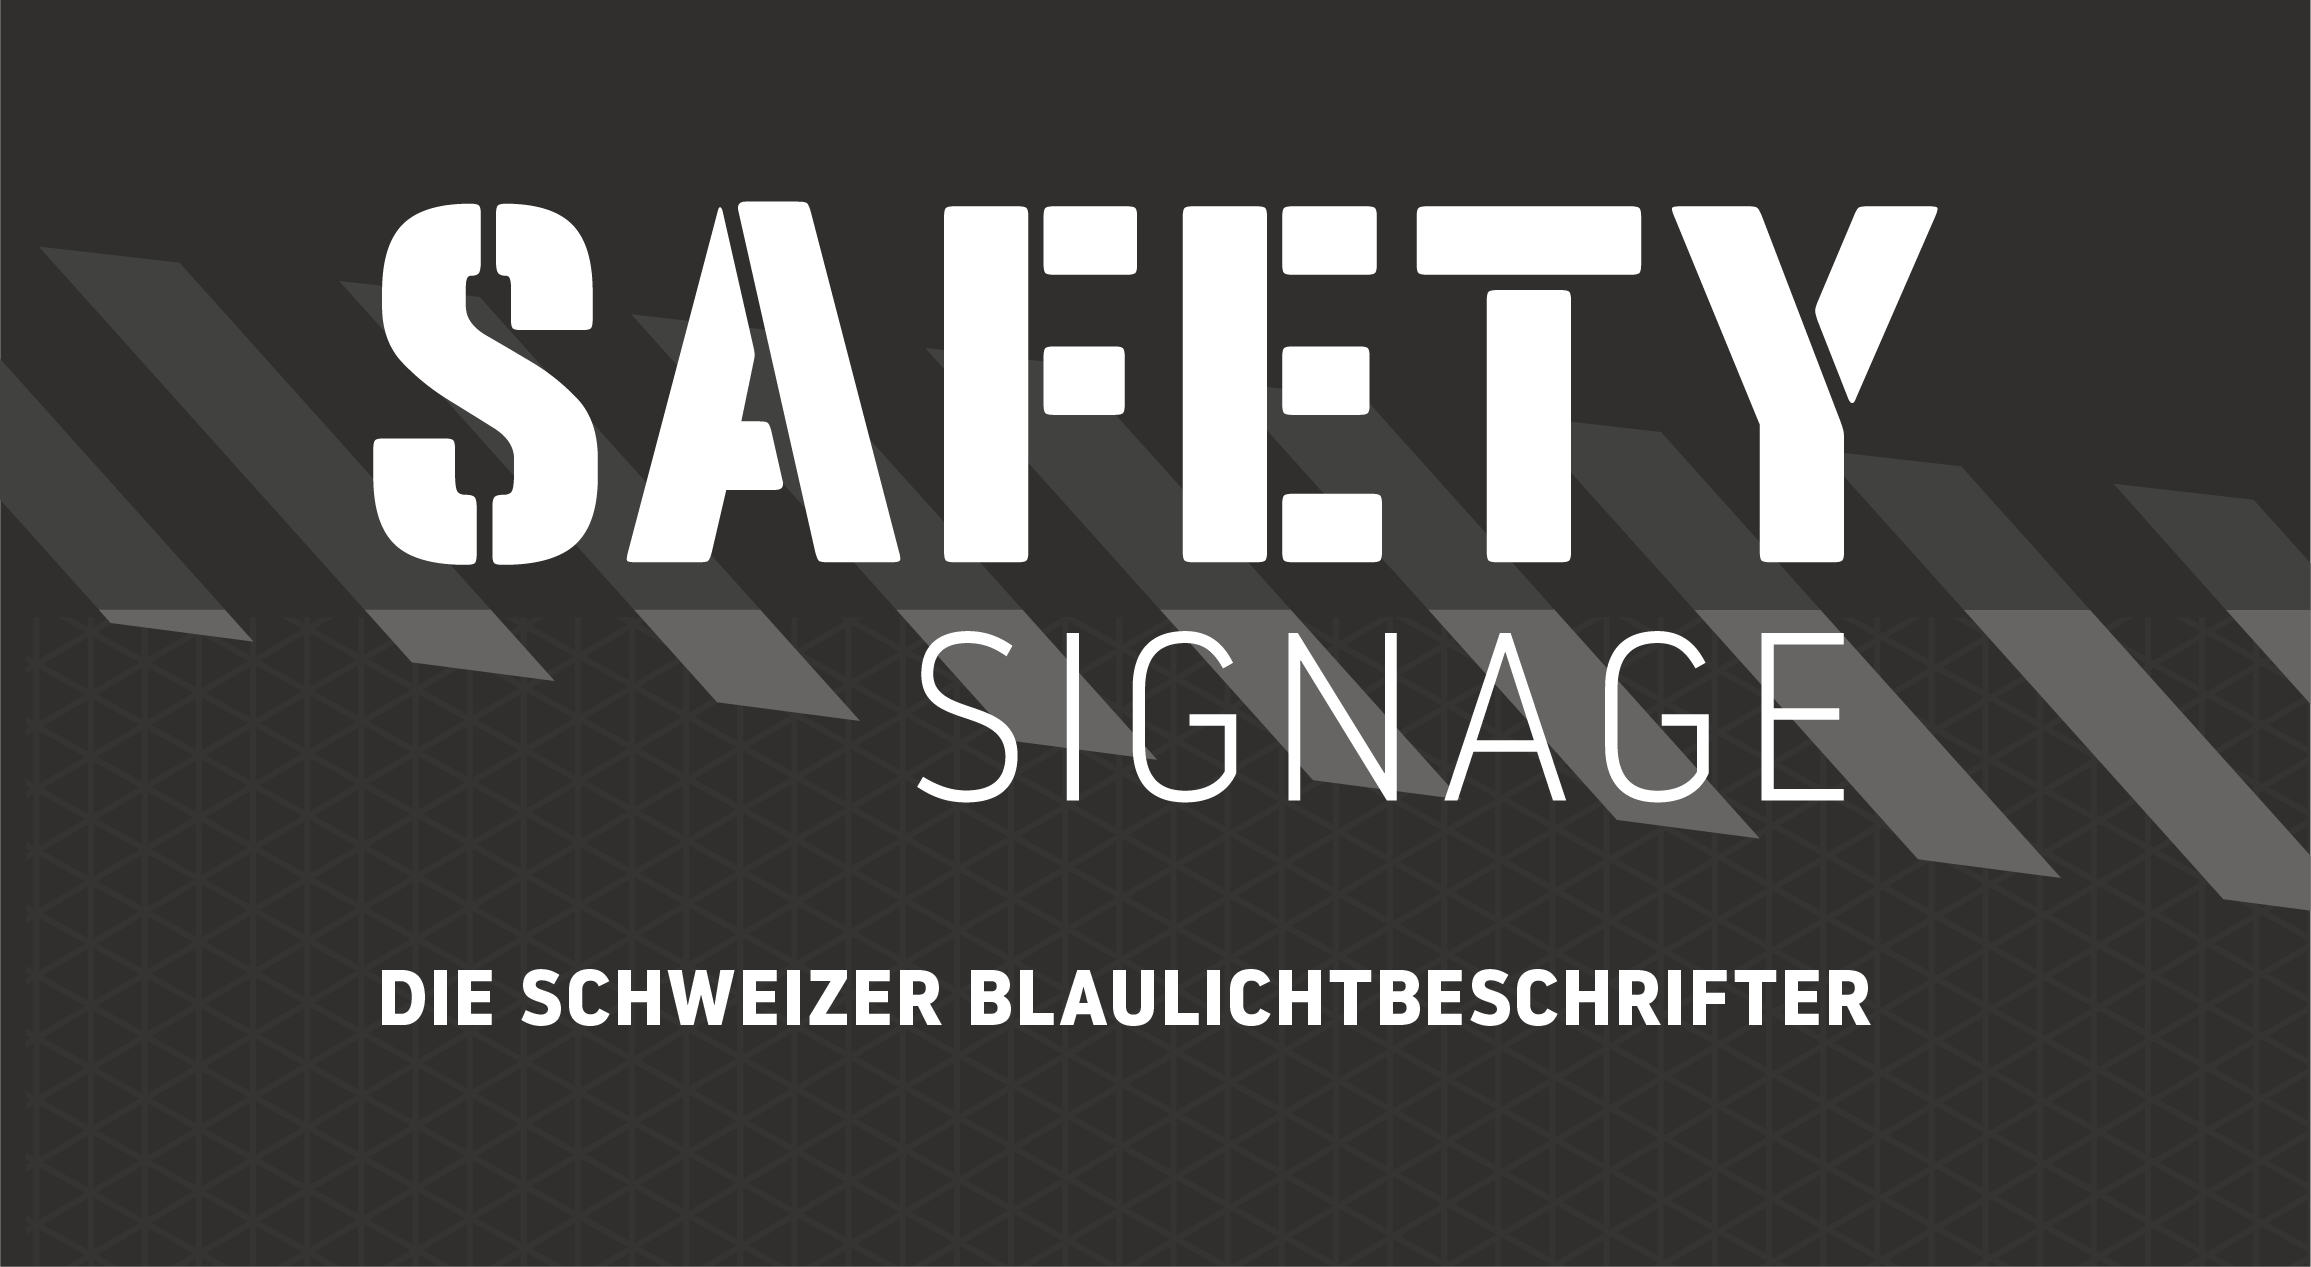 SAFETY-SIGNAGE by REKLAME-TECHNIK AG